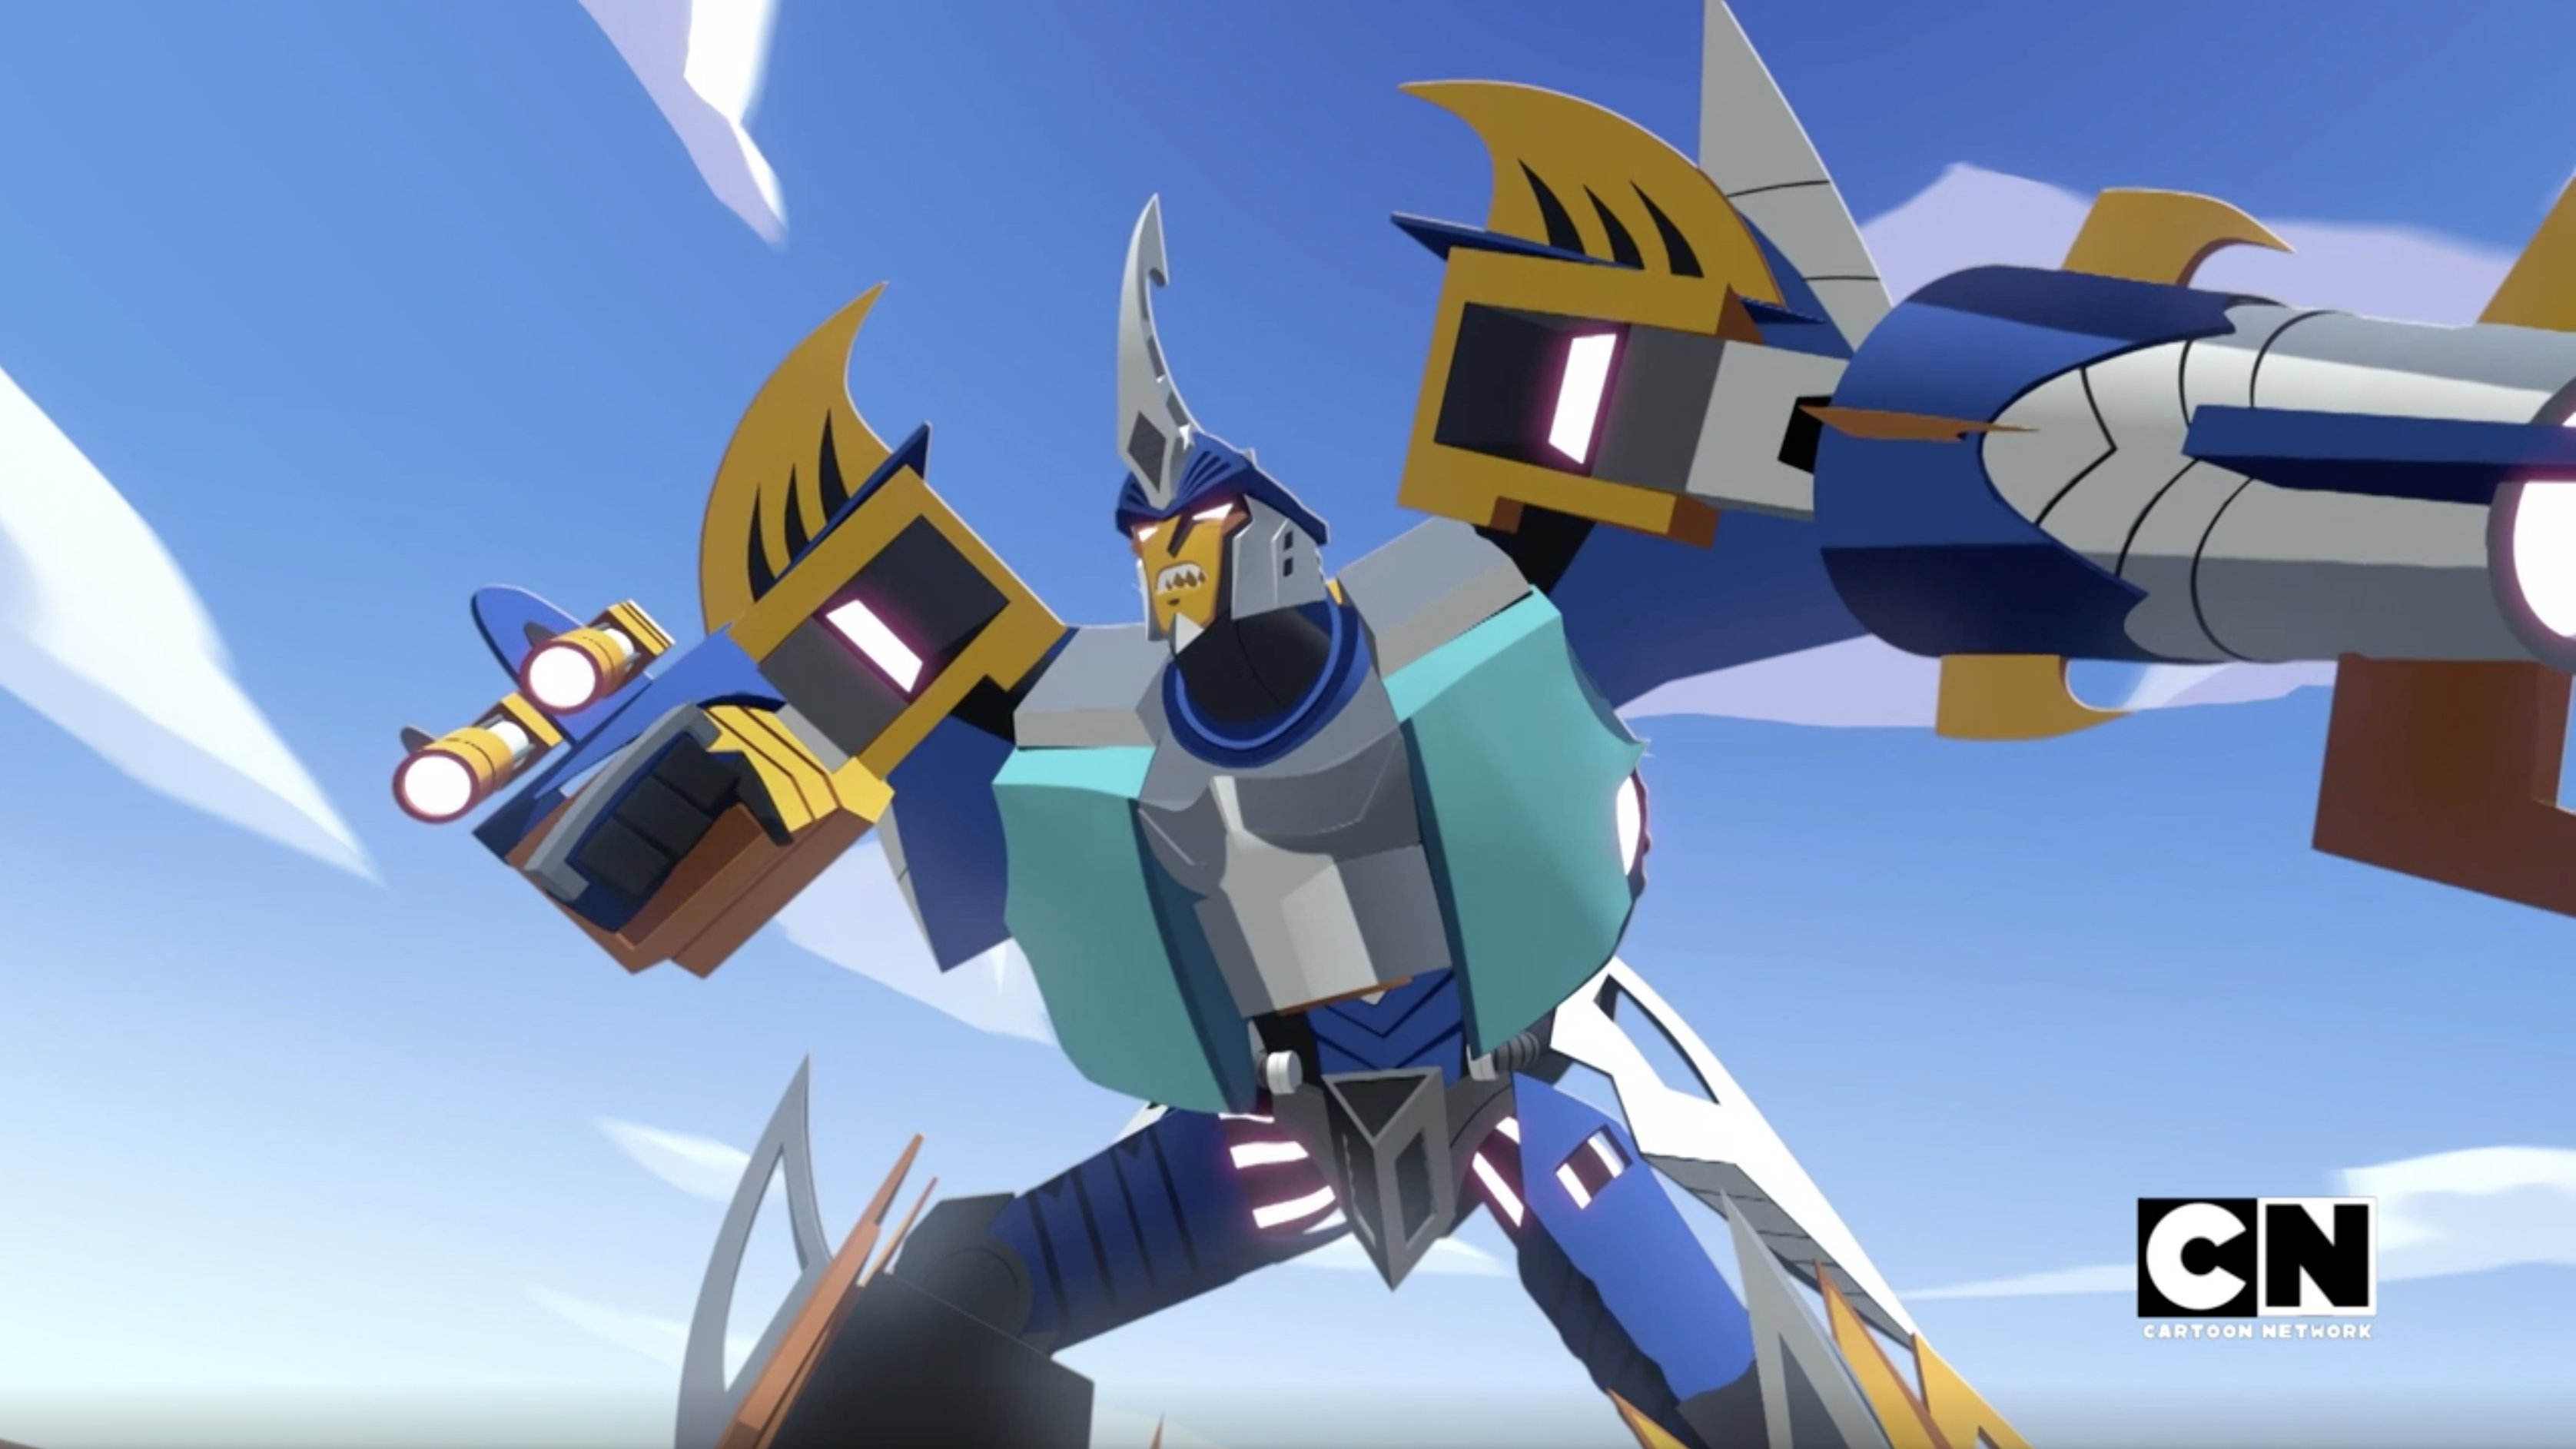 Sky-Byte makes a welcome return in Transformers Cyberverse